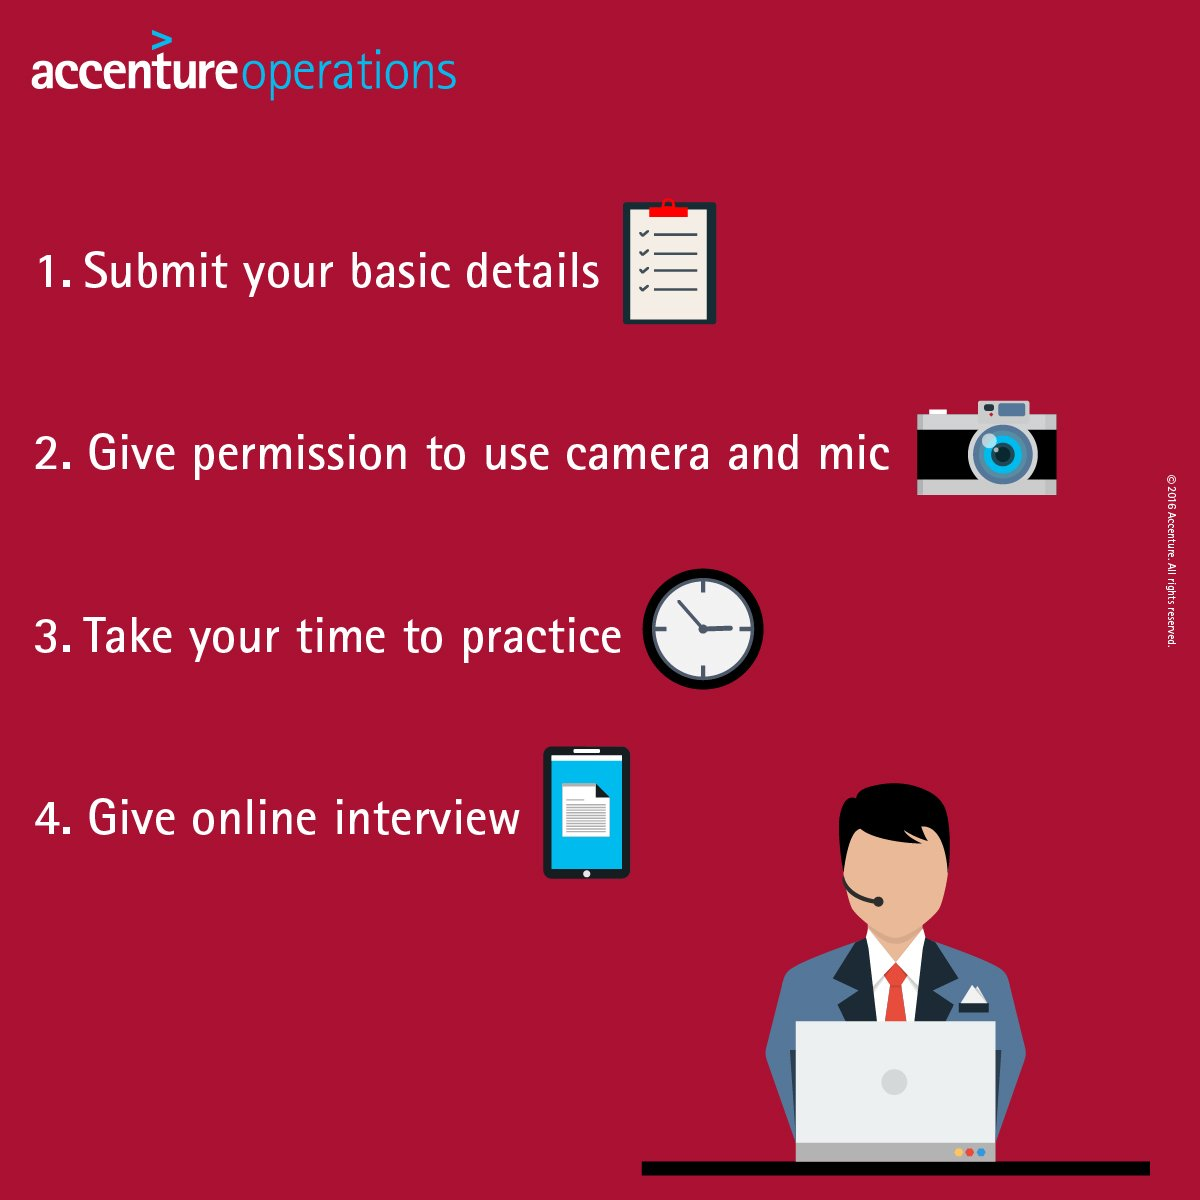 accenture jobs on twitter take time to think prepare accenture jobs on twitter take time to think prepare each answer to calmly record your online interview for accenture